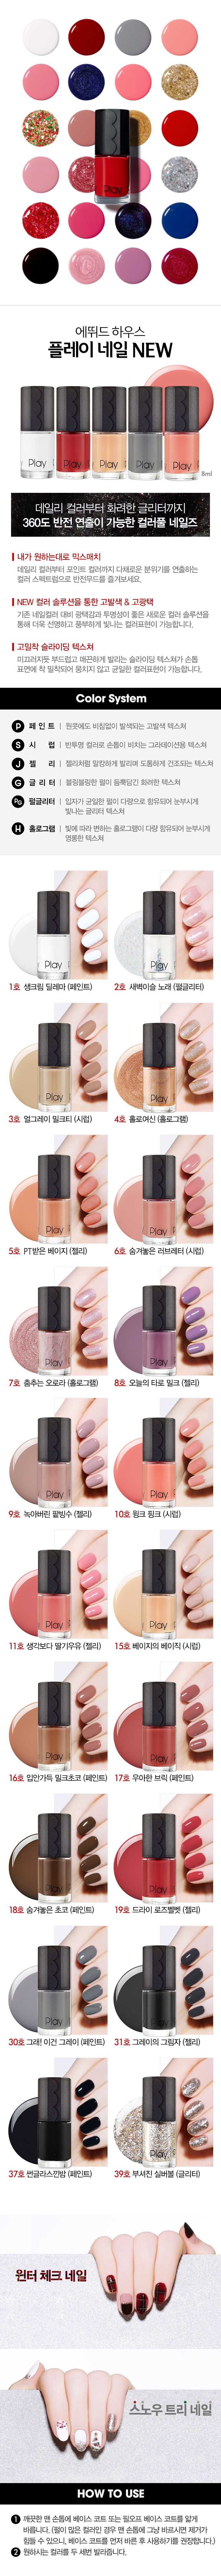 Etude House,Makeup,Nail,Nail Polish,NewArrival-201612,,